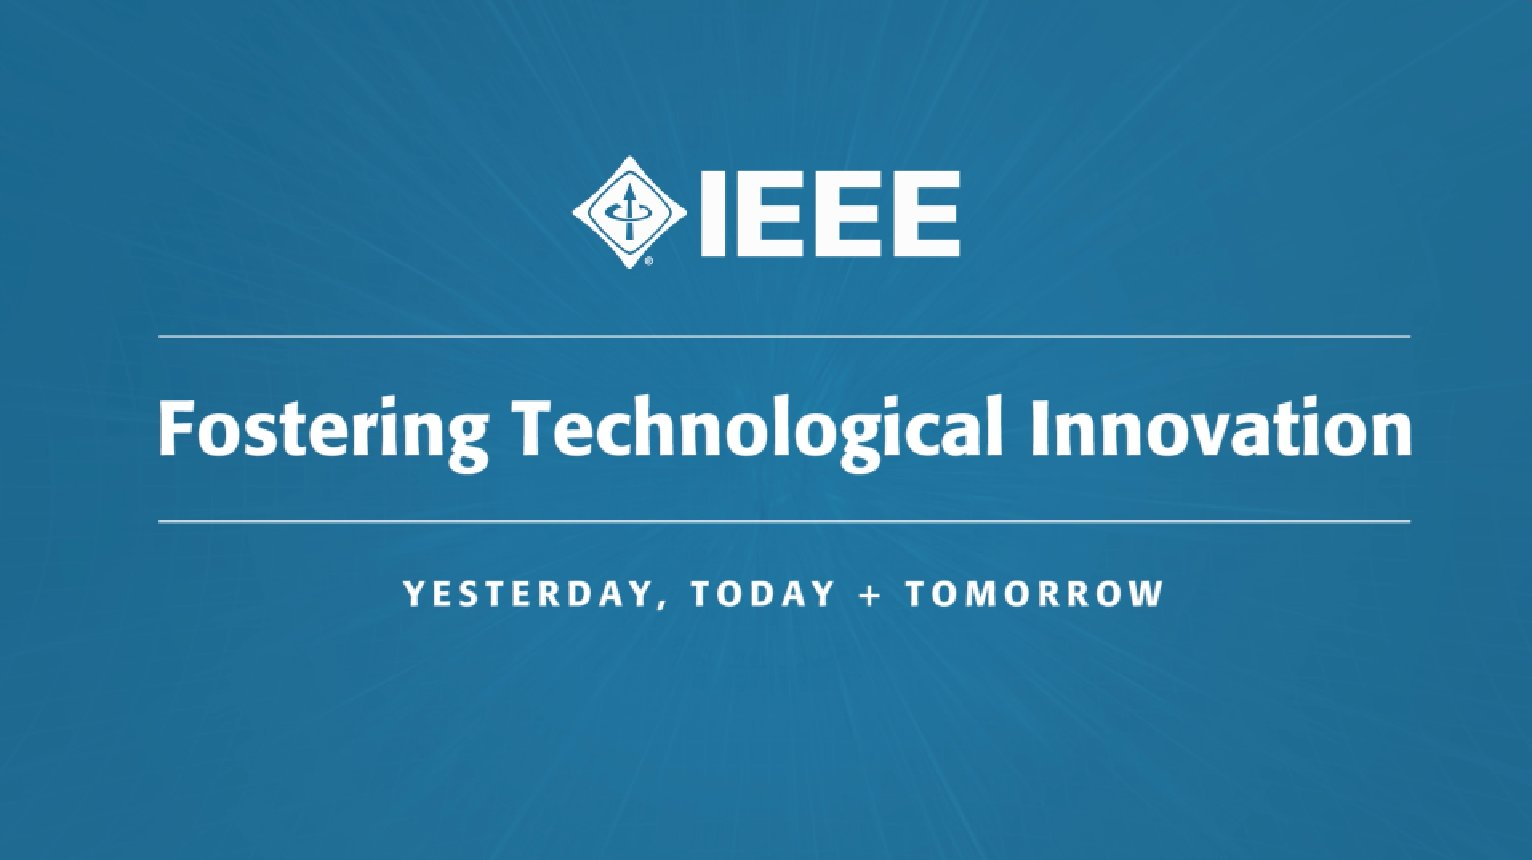 What + If = IEEE